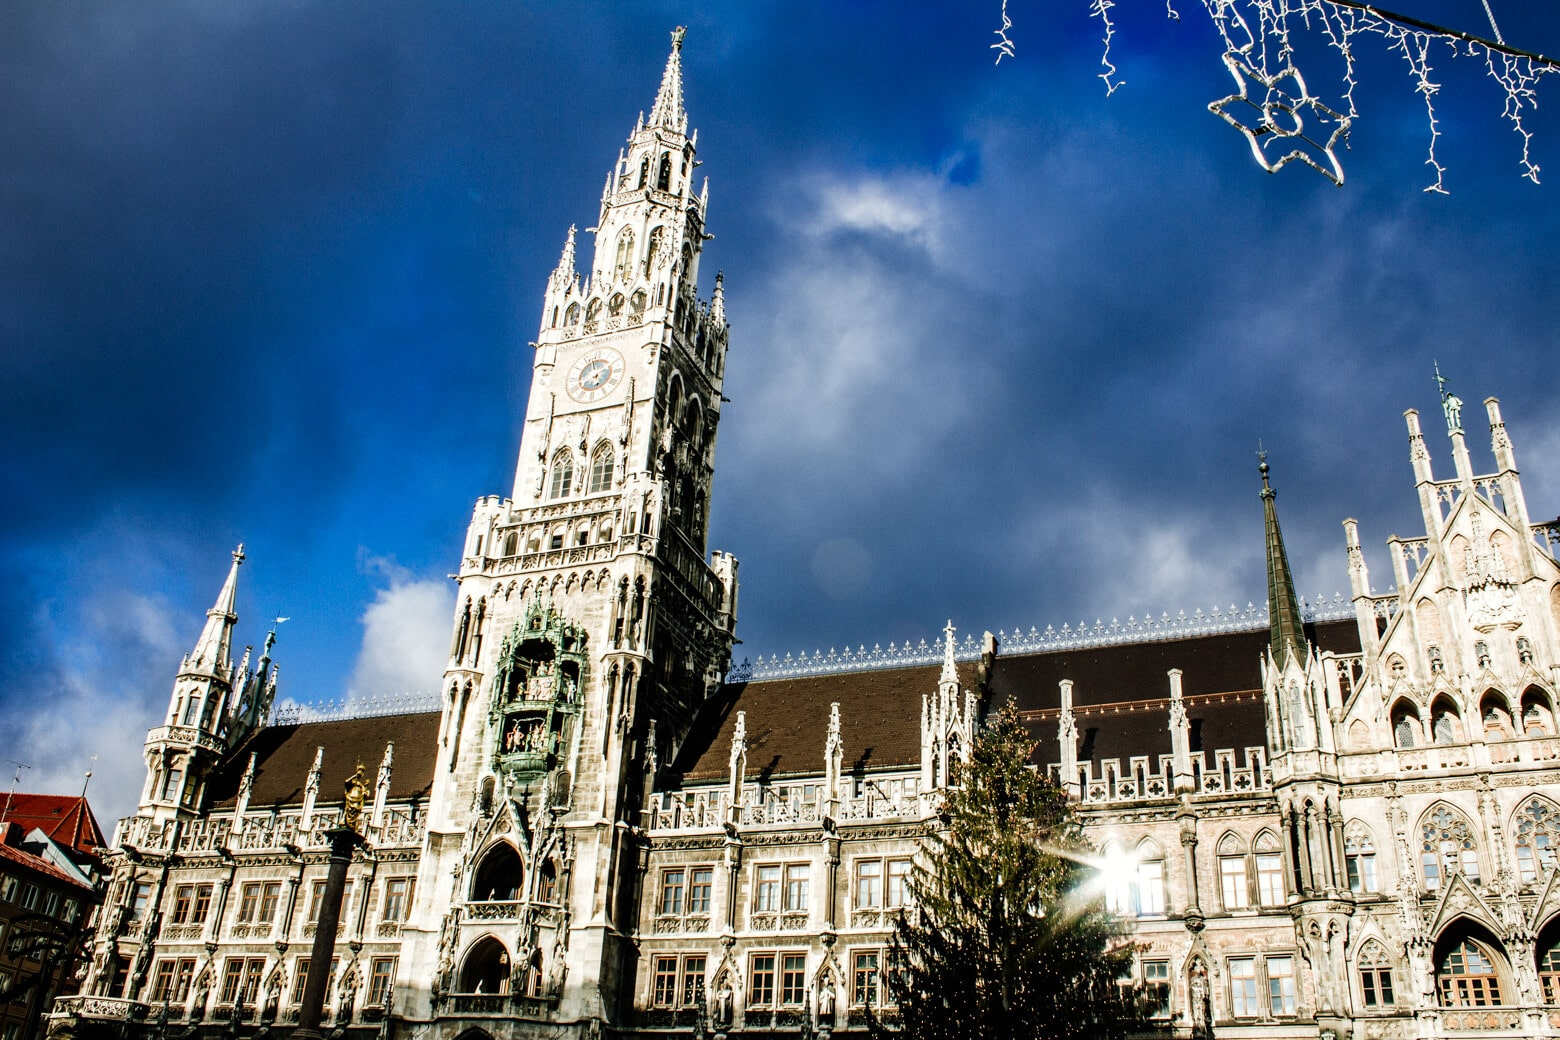 Munich in December